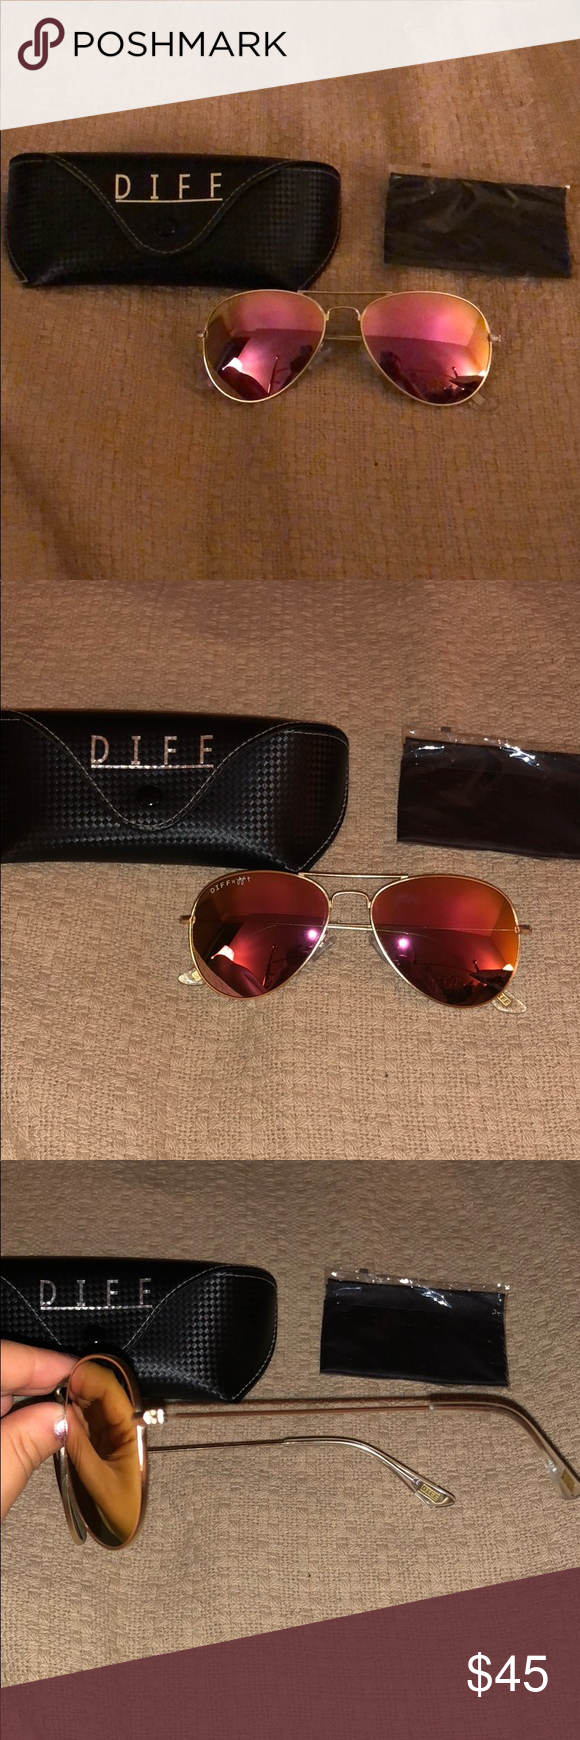 077cb765cc2d8 DIFF Eyeware - Sunglasses Limited Edition JoJo Fletcher Aviator Sunglasses.  Rose and gold lenses with gold frame. Diff Eyewear Accessories Sunglasses